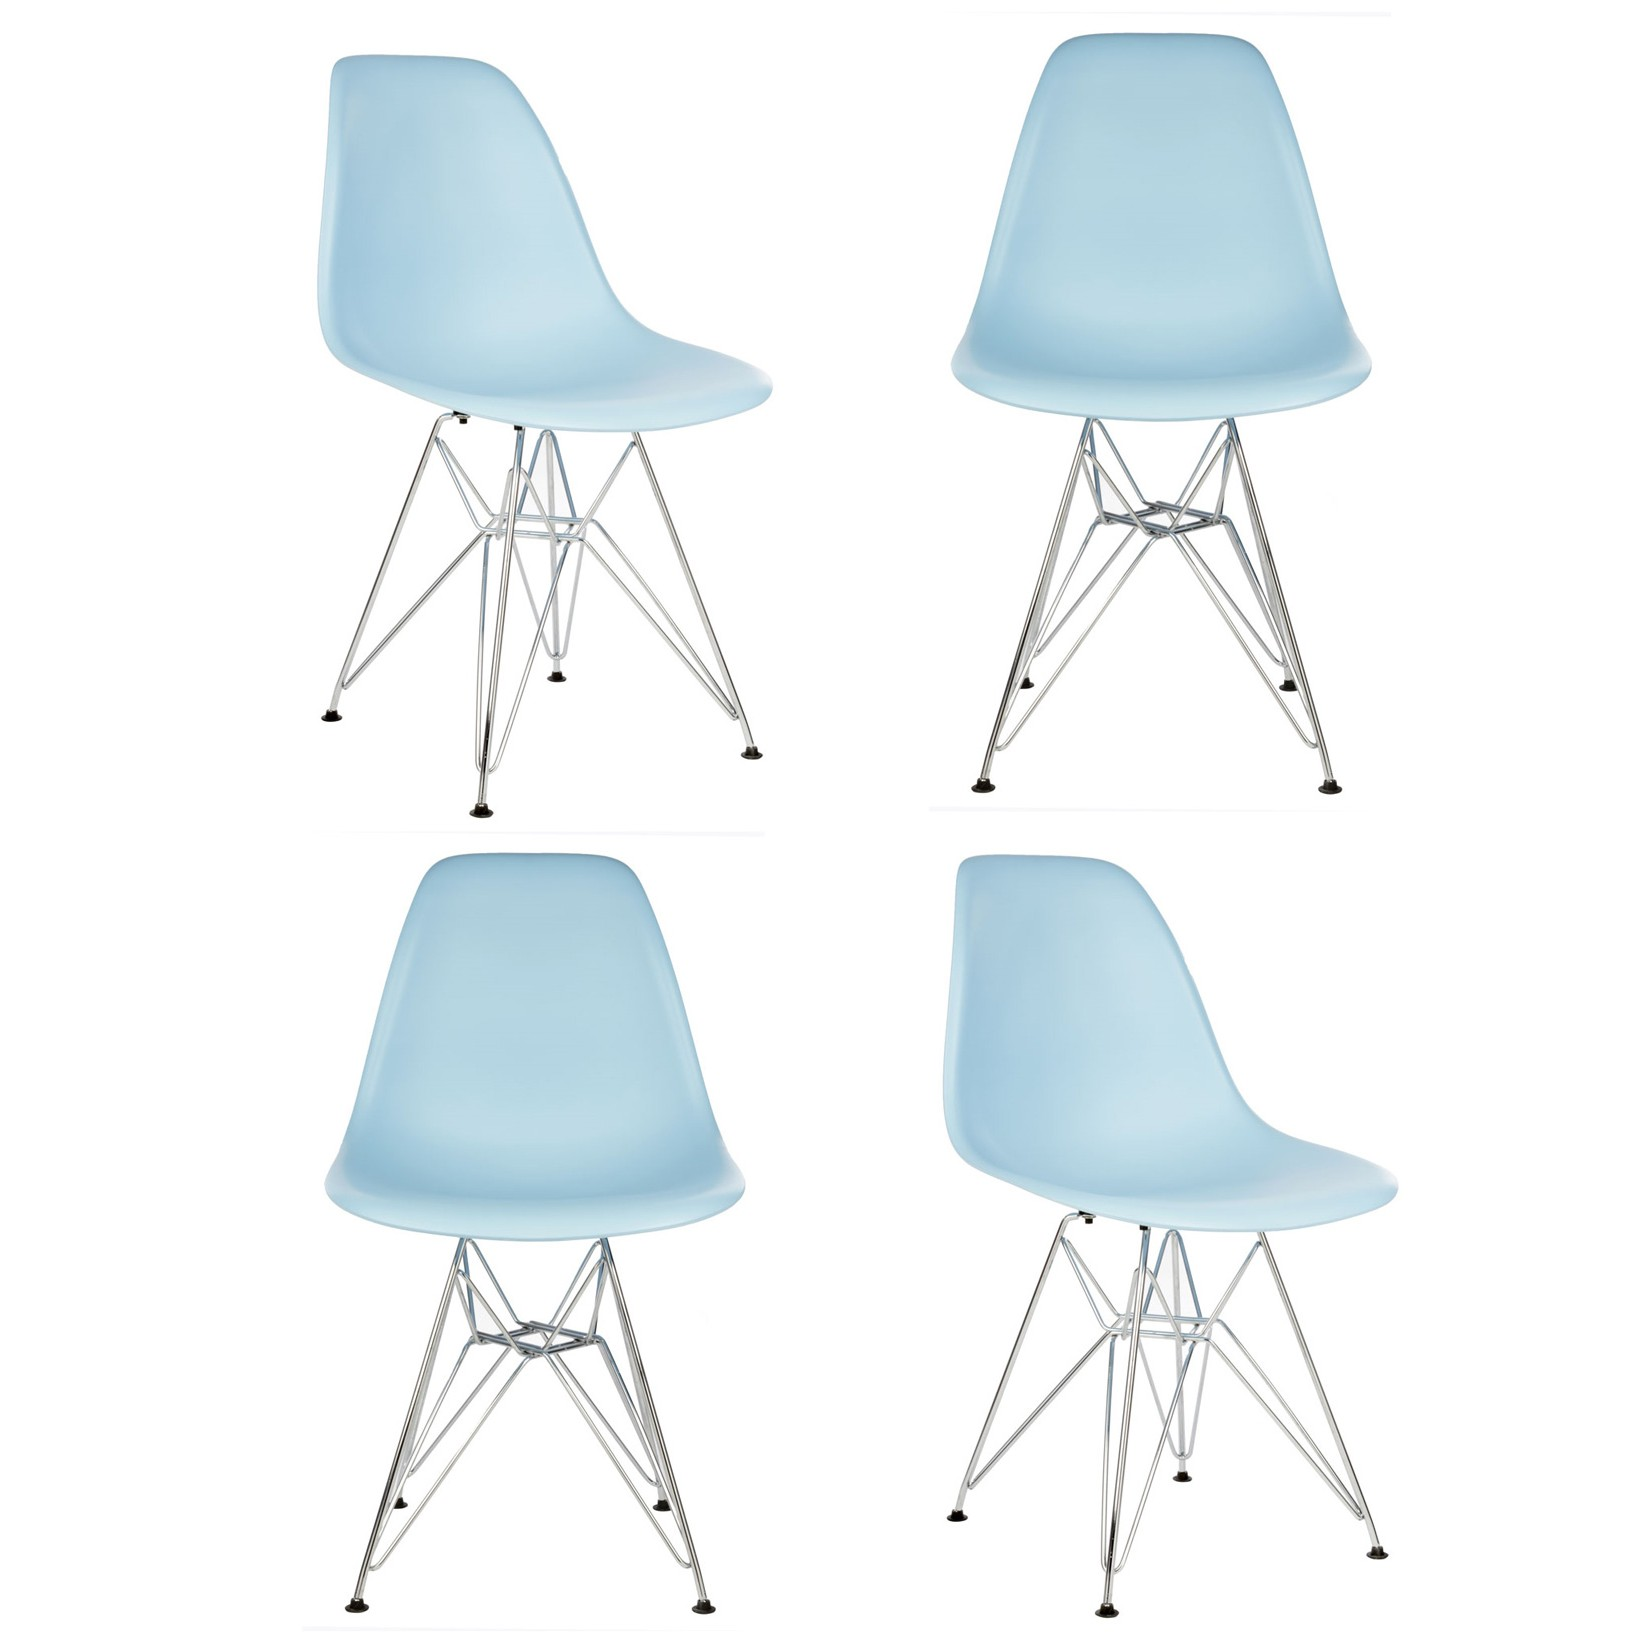 plastic chairs with steel legs storage ottoman sound chair set of 4 eames style dsr molded light blue dining